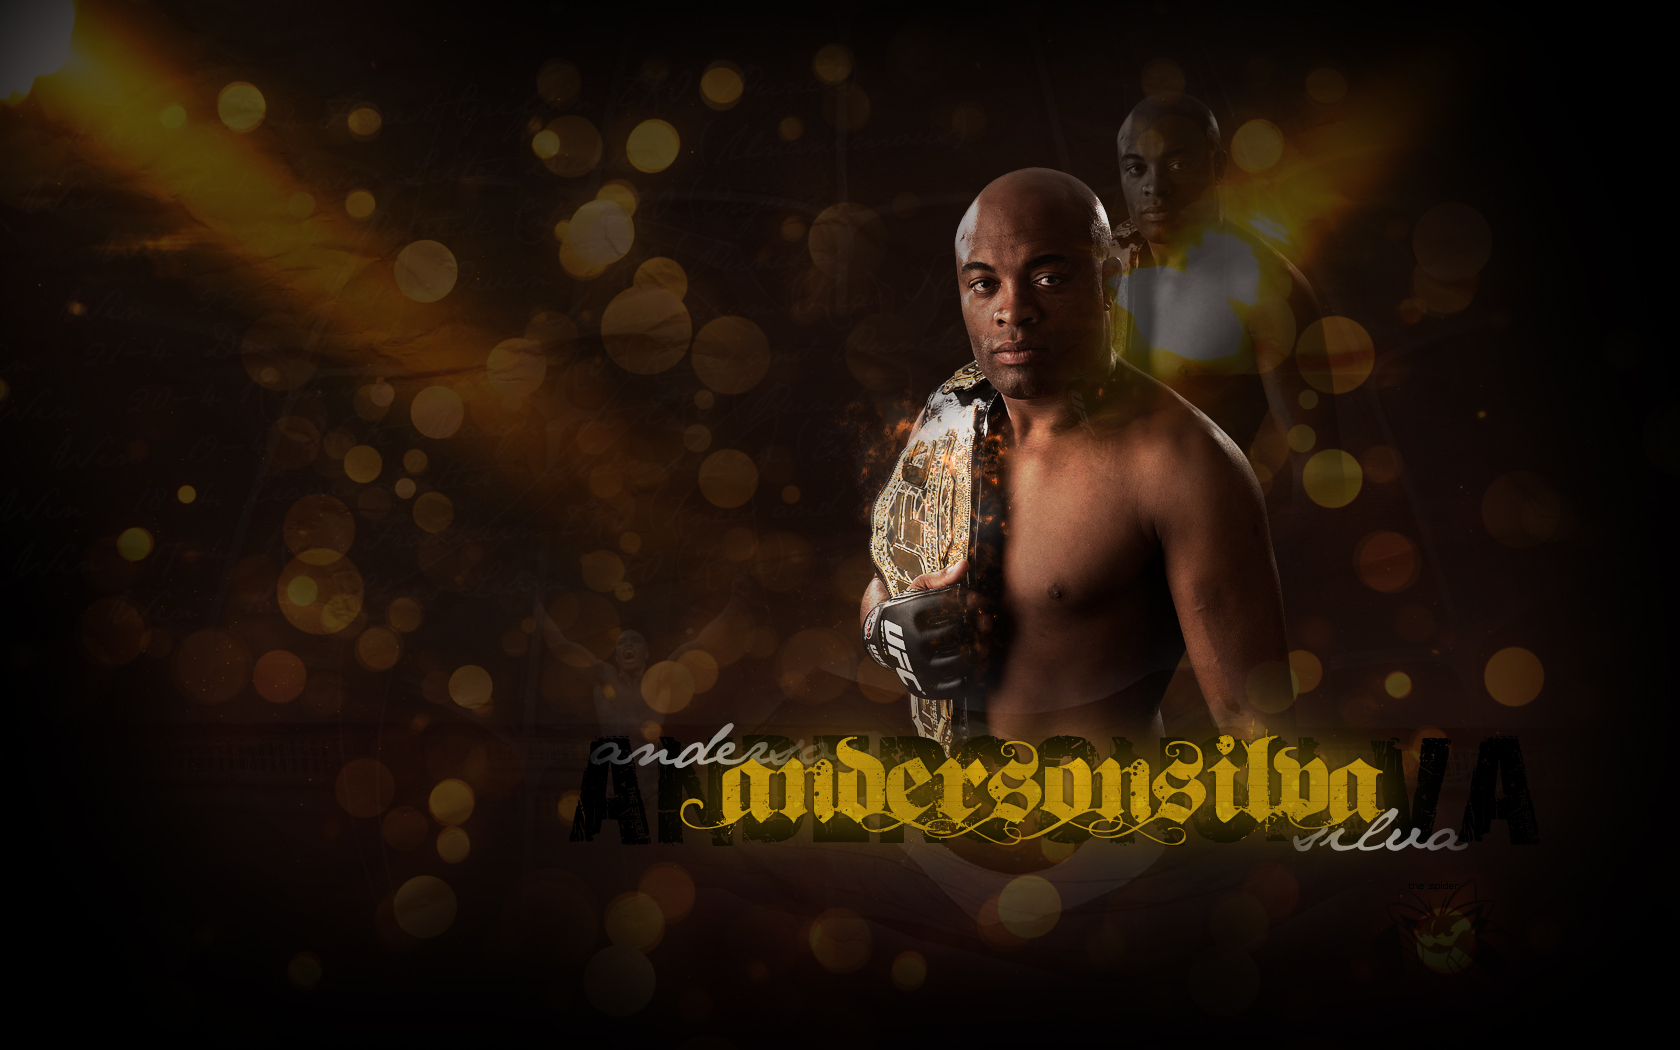 Anderson Silva Wallpaper HD 1680x1050